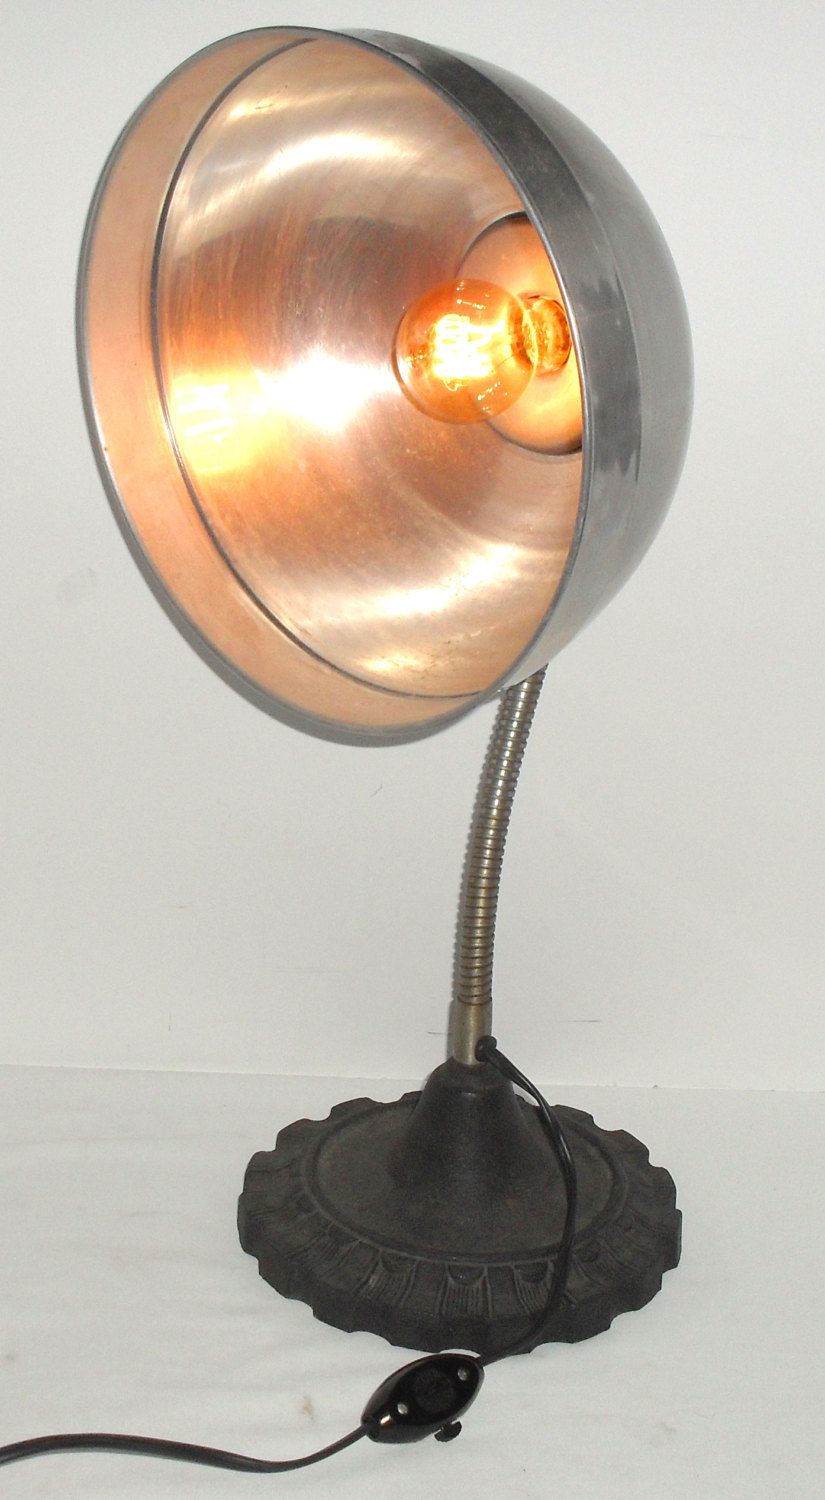 vintage cast iron gooseneck desk accent lamp industrial art deco miniature table lamps purposed heat light parabolic aluminum reflector with amber spiral bulb vintageroyaltreasure